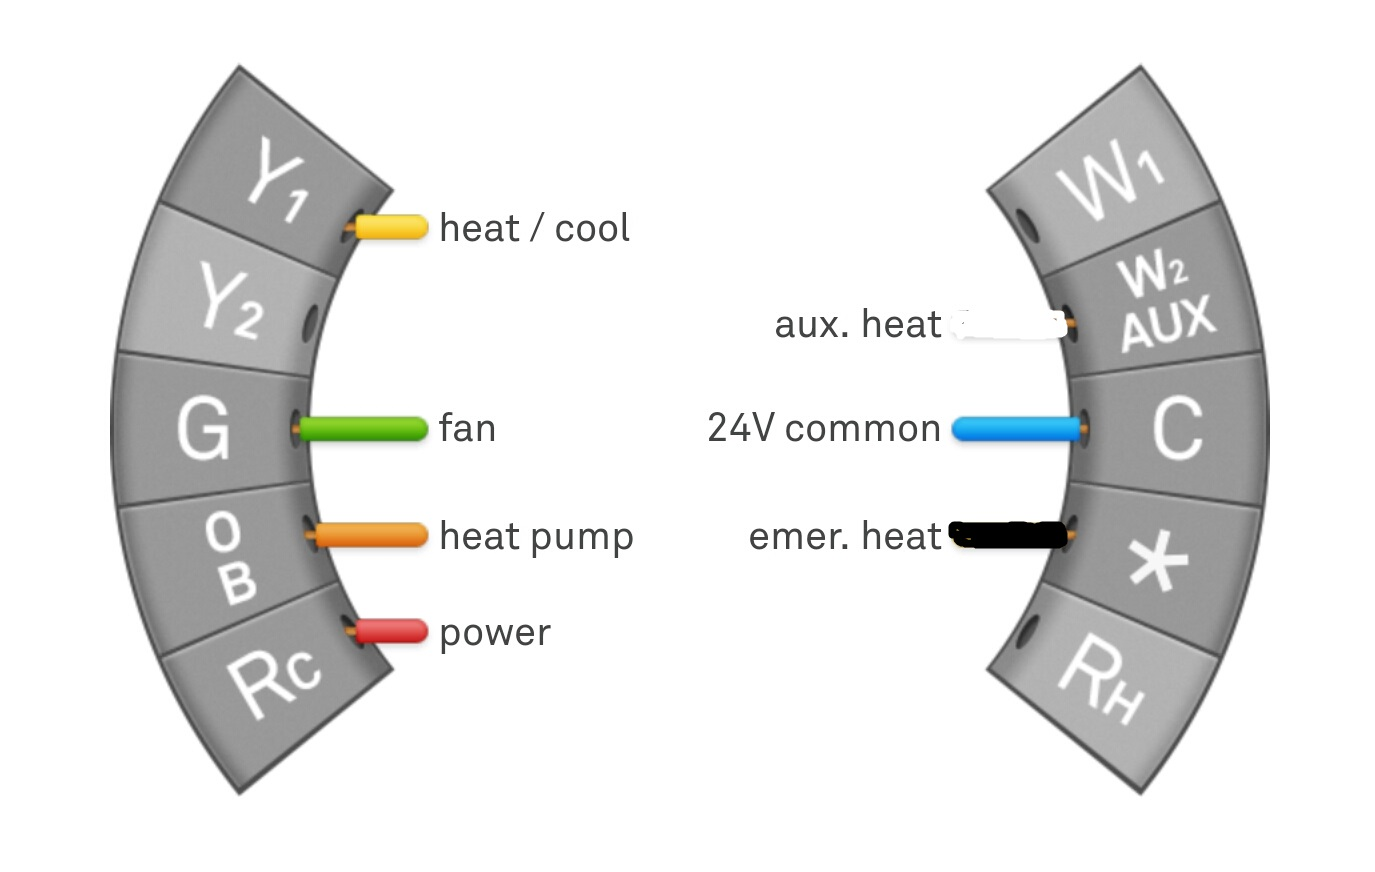 Wiring Diagram For York Heat Pump To Nest Thermostat on